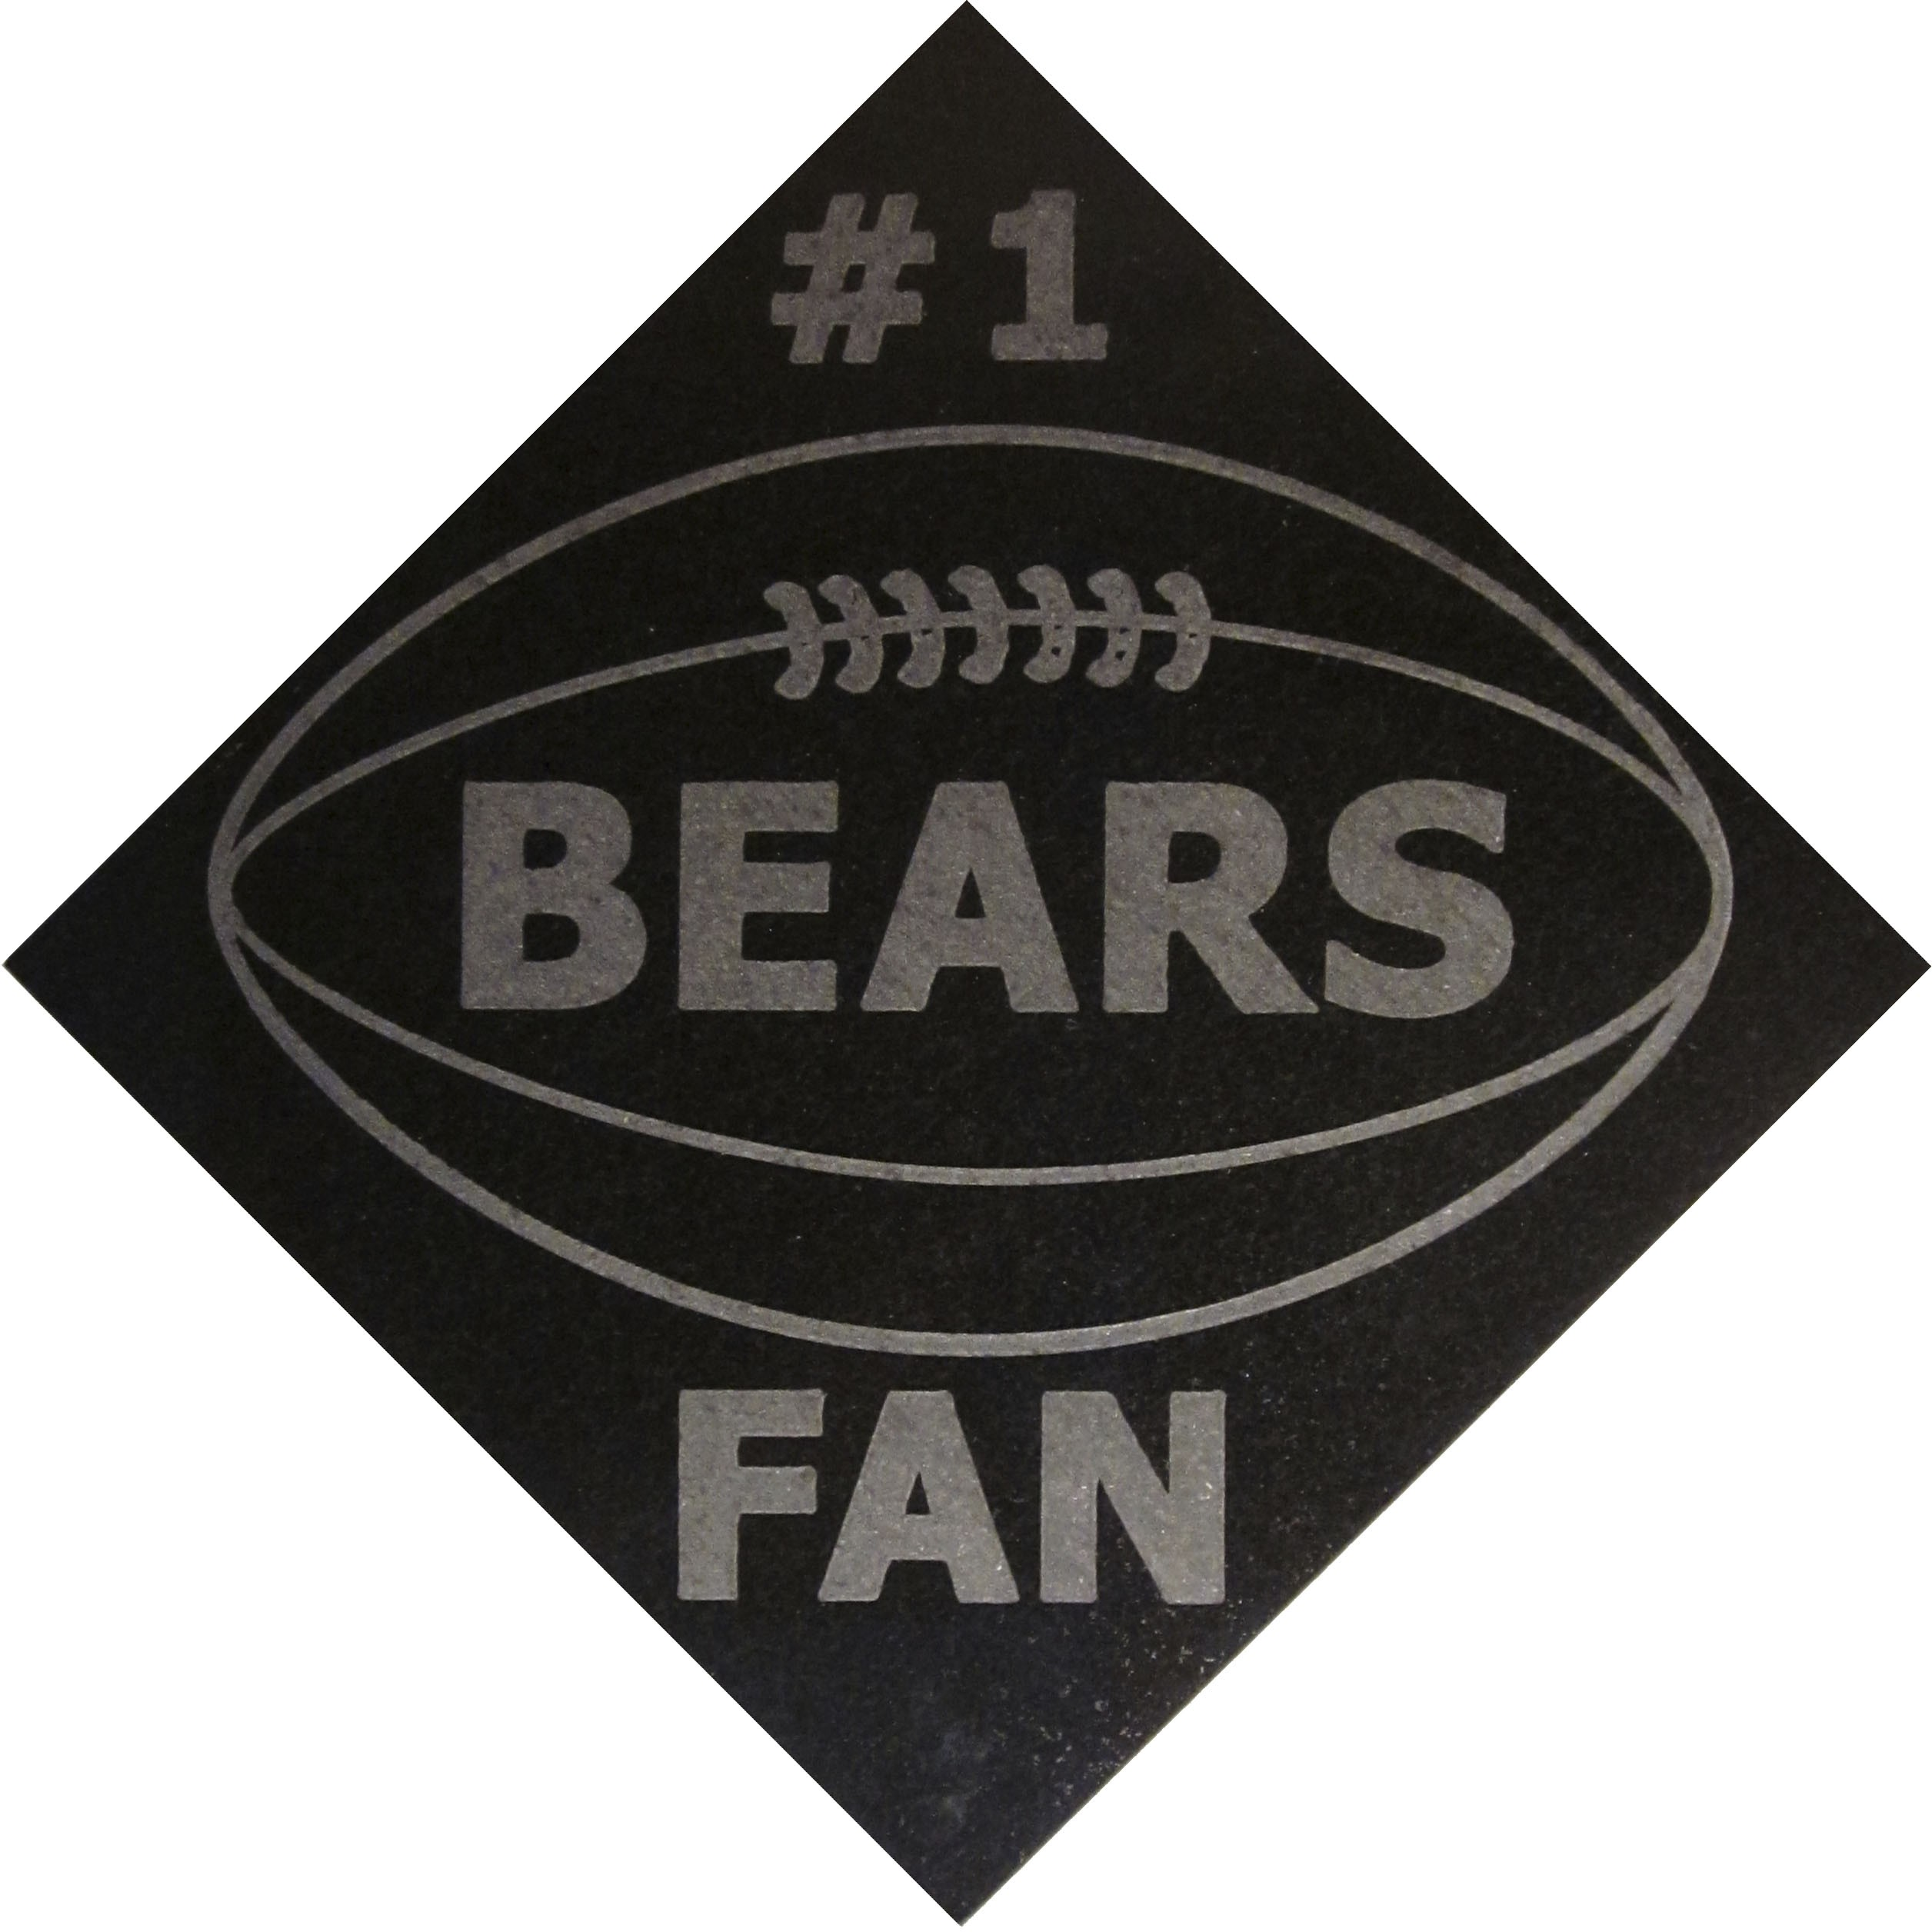 "Image logo for 12"" X 12"" Engraved Black Granite Tile - #1 BEARS FAN"